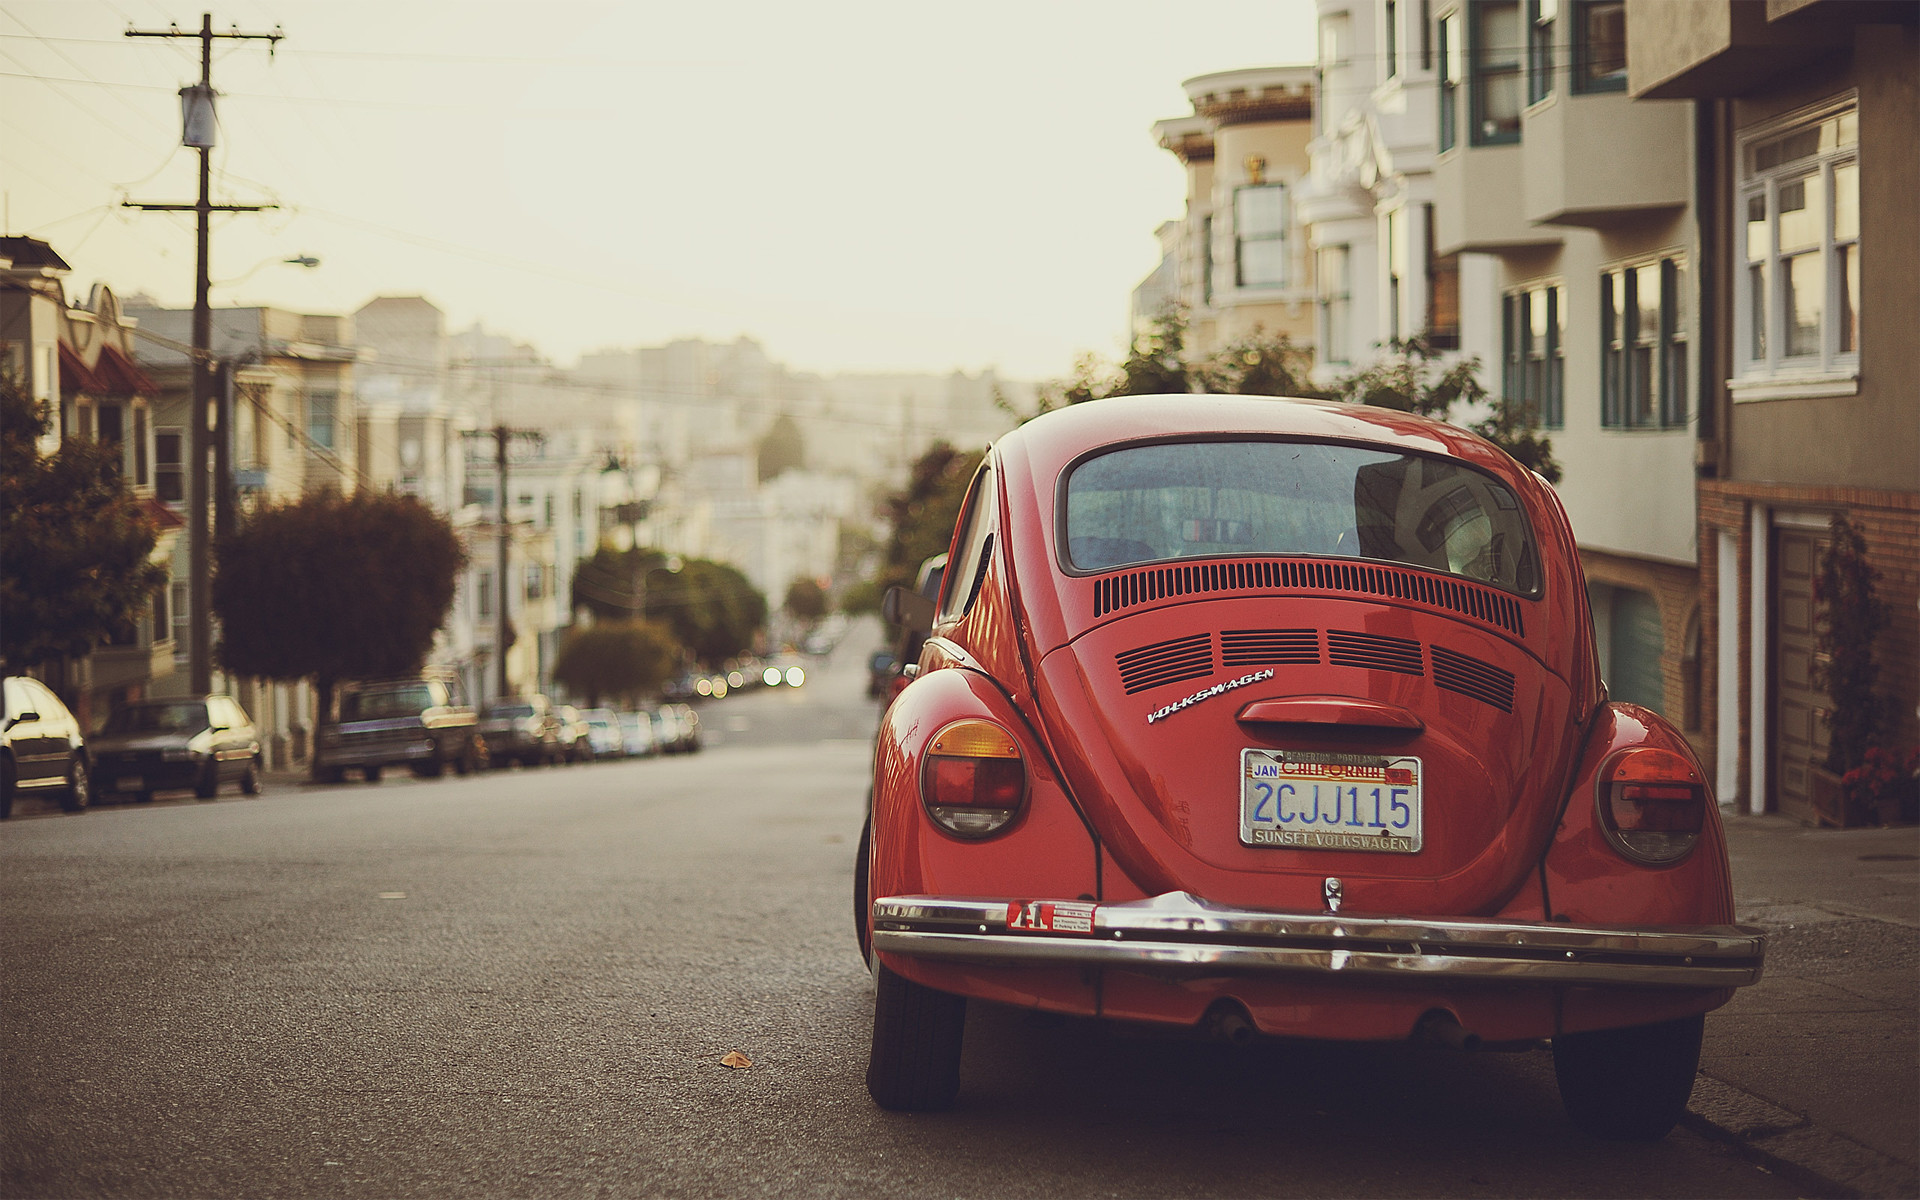 Volkswagen Beetle images vw beetle HD wallpaper and background photos